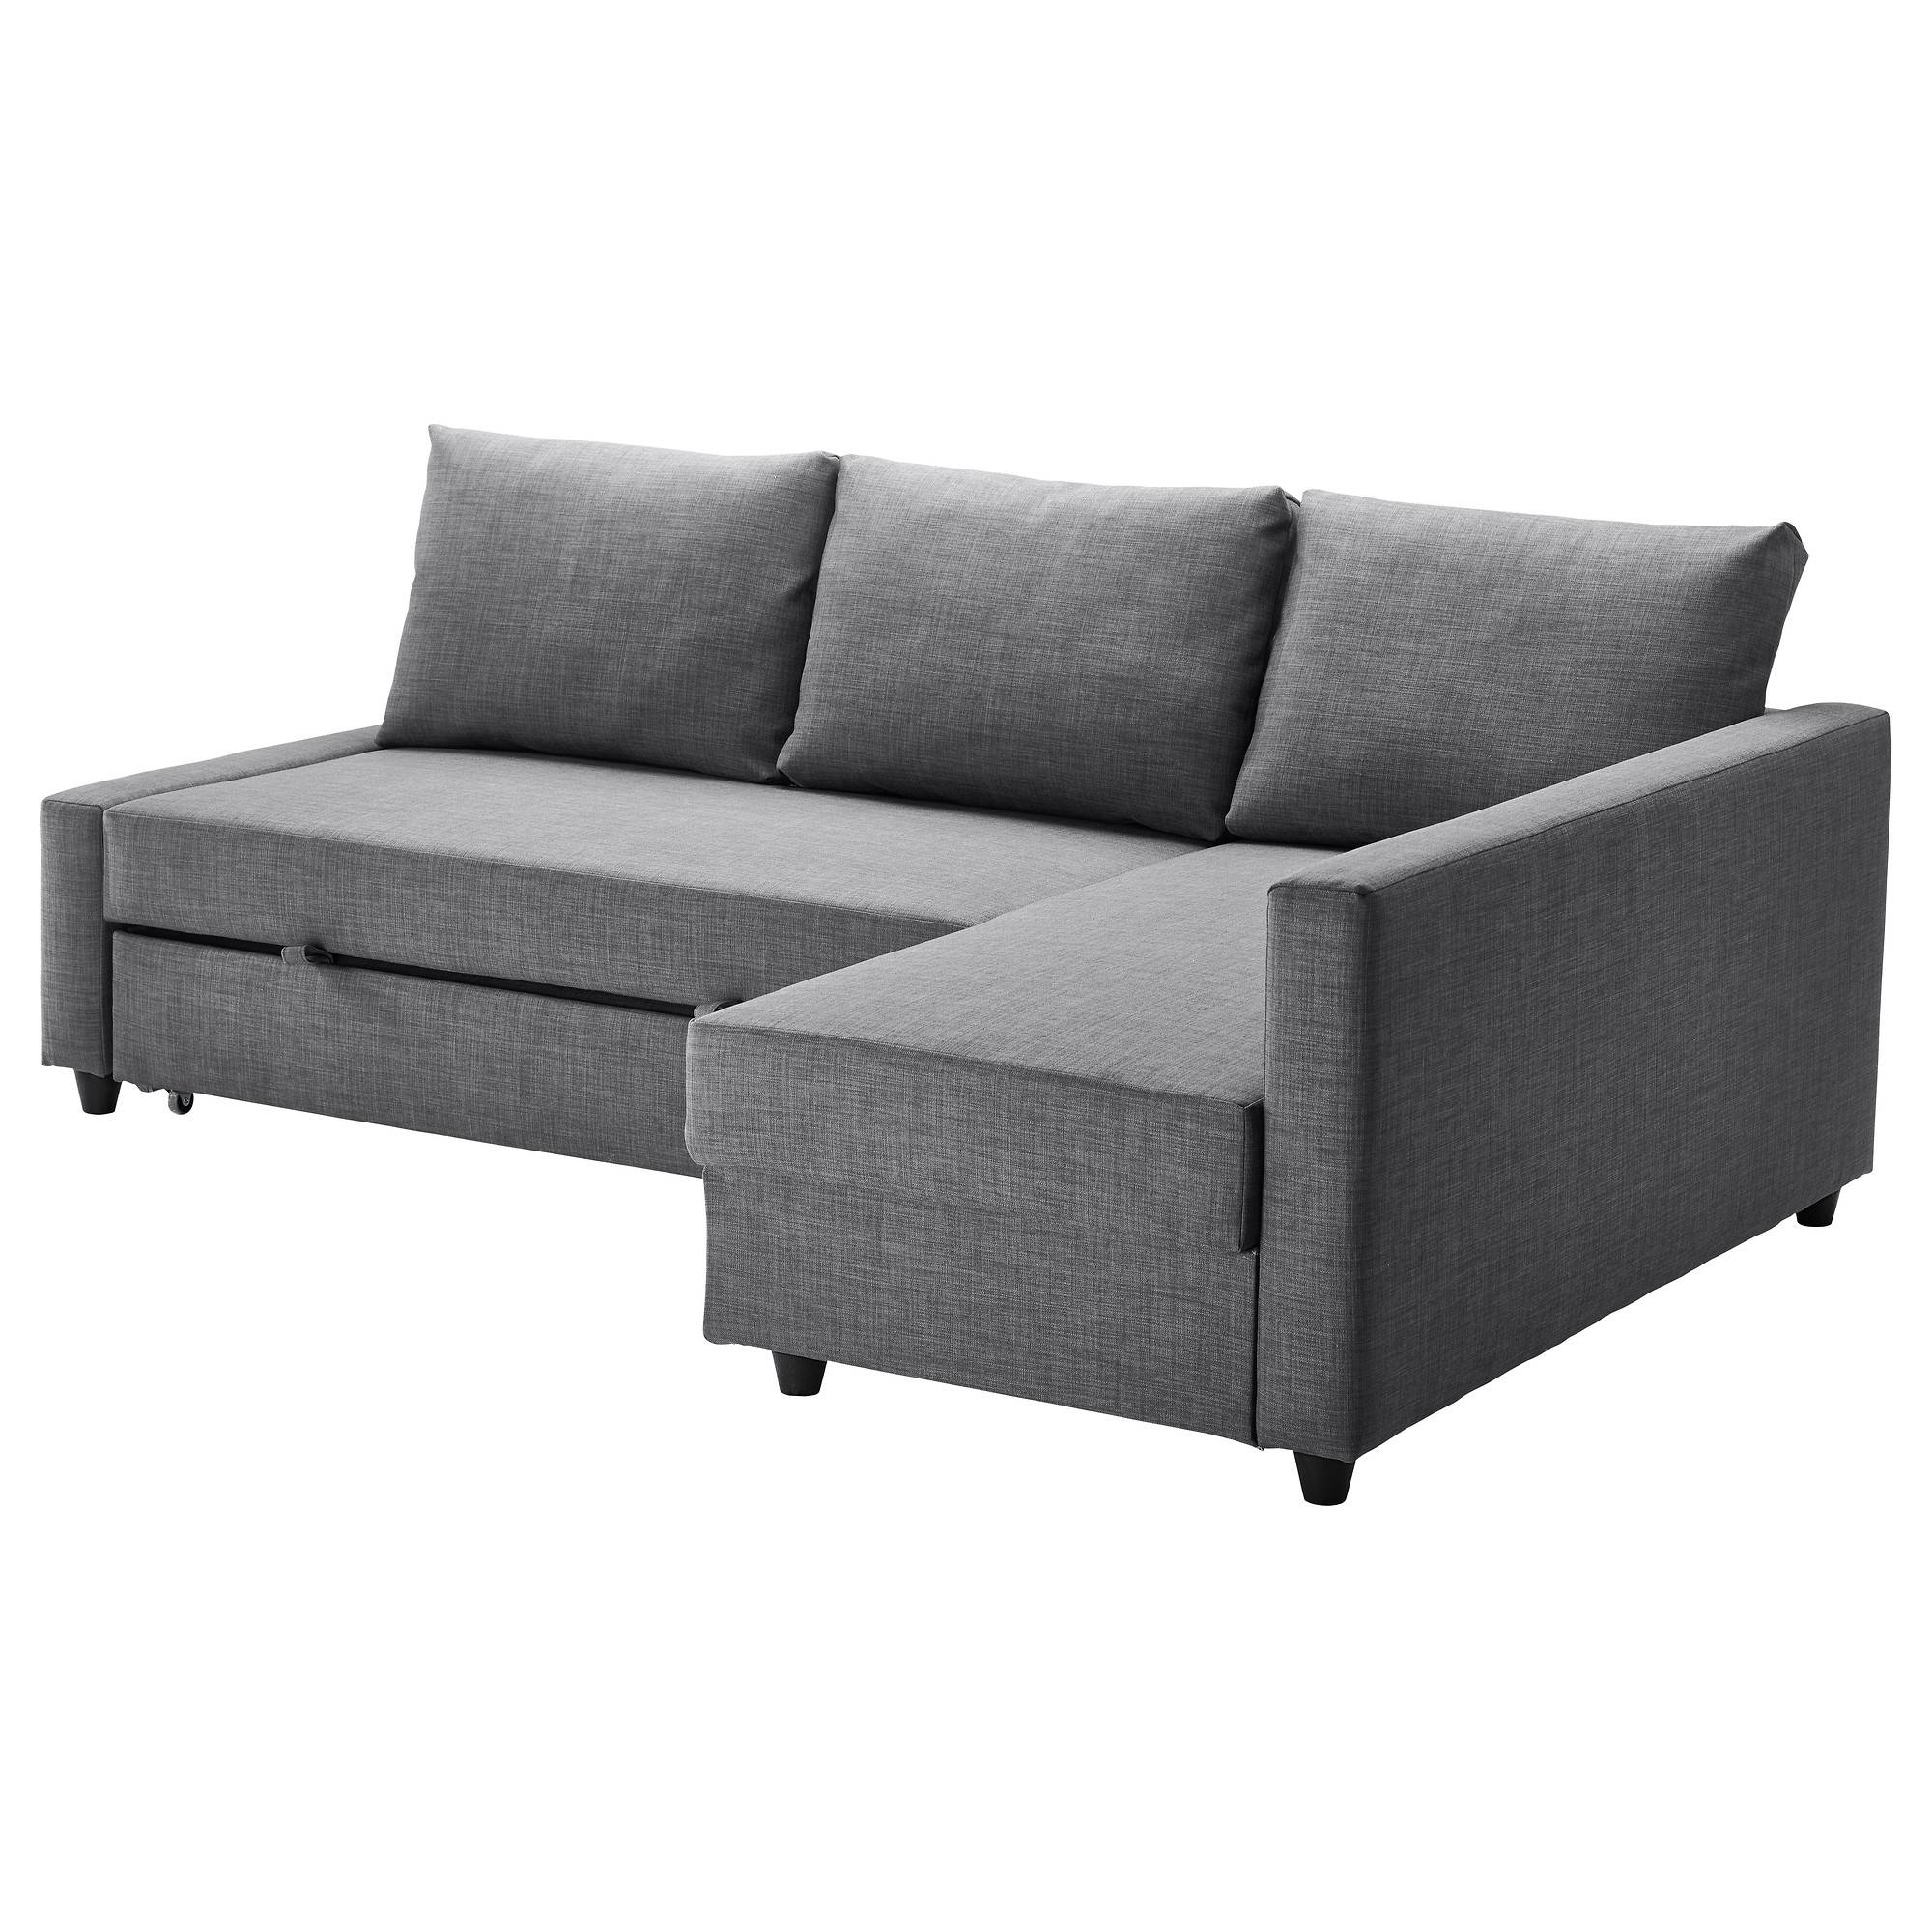 Friheten Corner Sofa-Bed With Storage Skiftebo Dark Grey - Ikea in Ikea Chaise Lounge Sofa (Image 11 of 30)